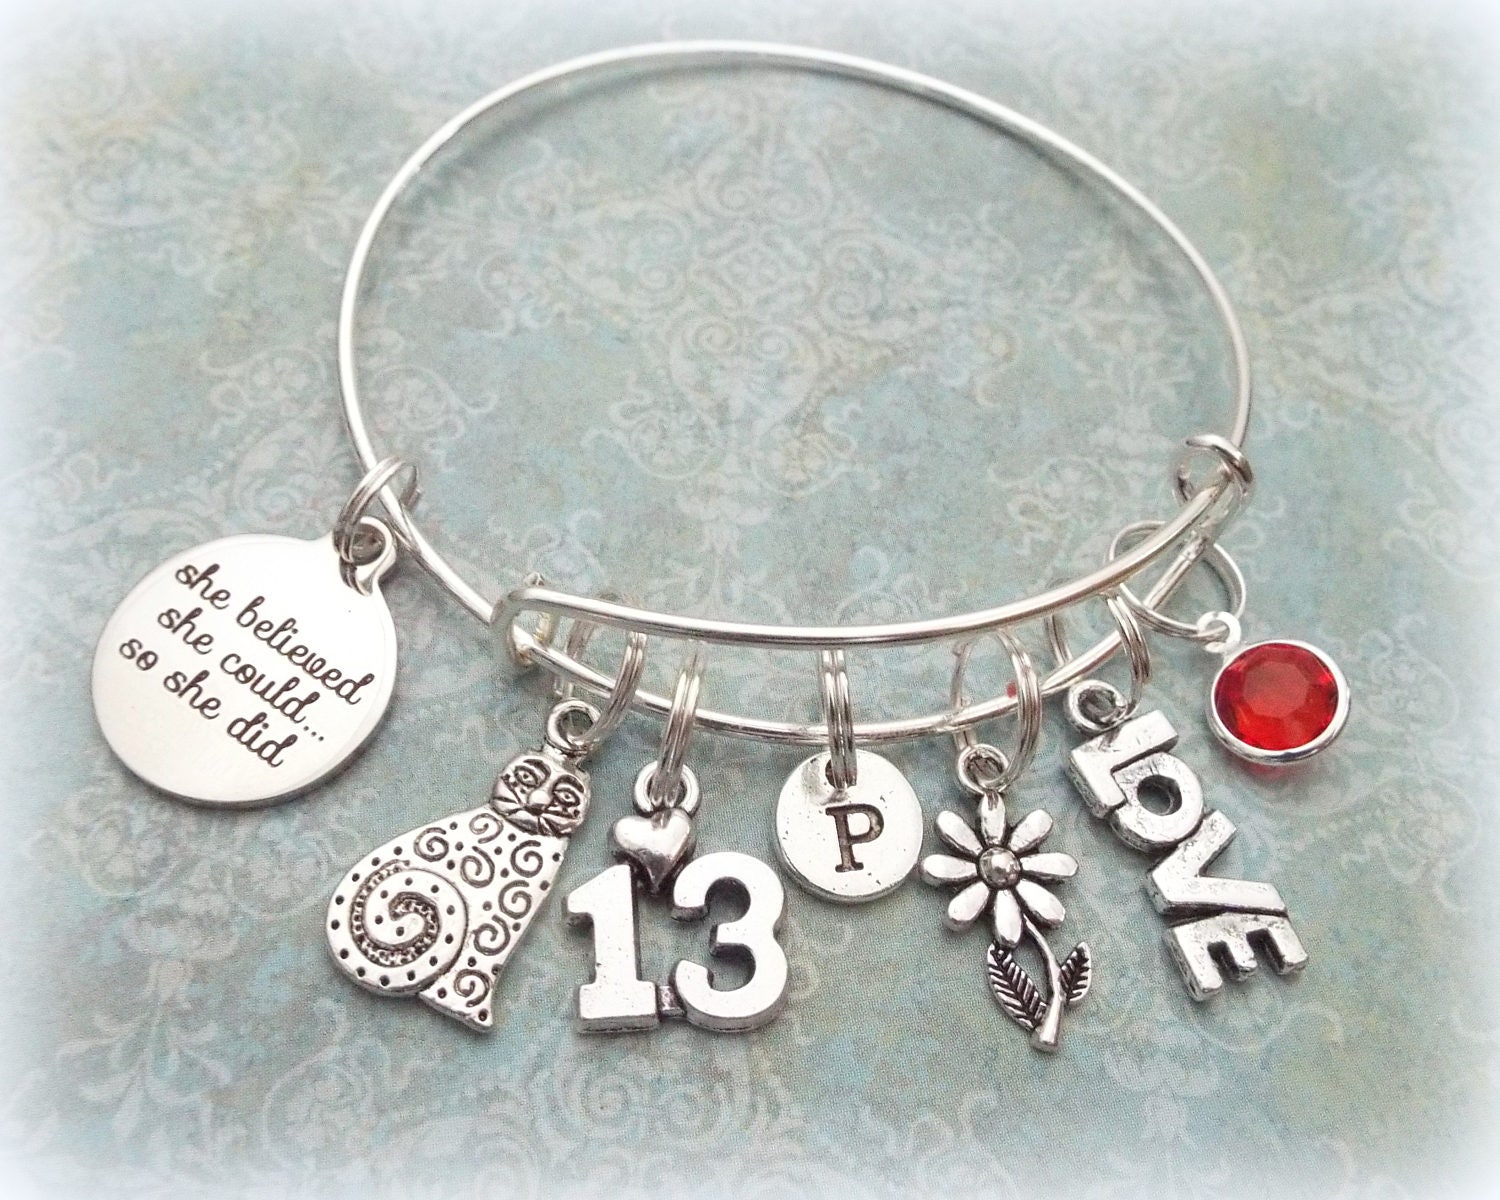 13th Birthday Charm Bracelet Gift For 13 Year Old Daughter Cat Personalized Jewelry